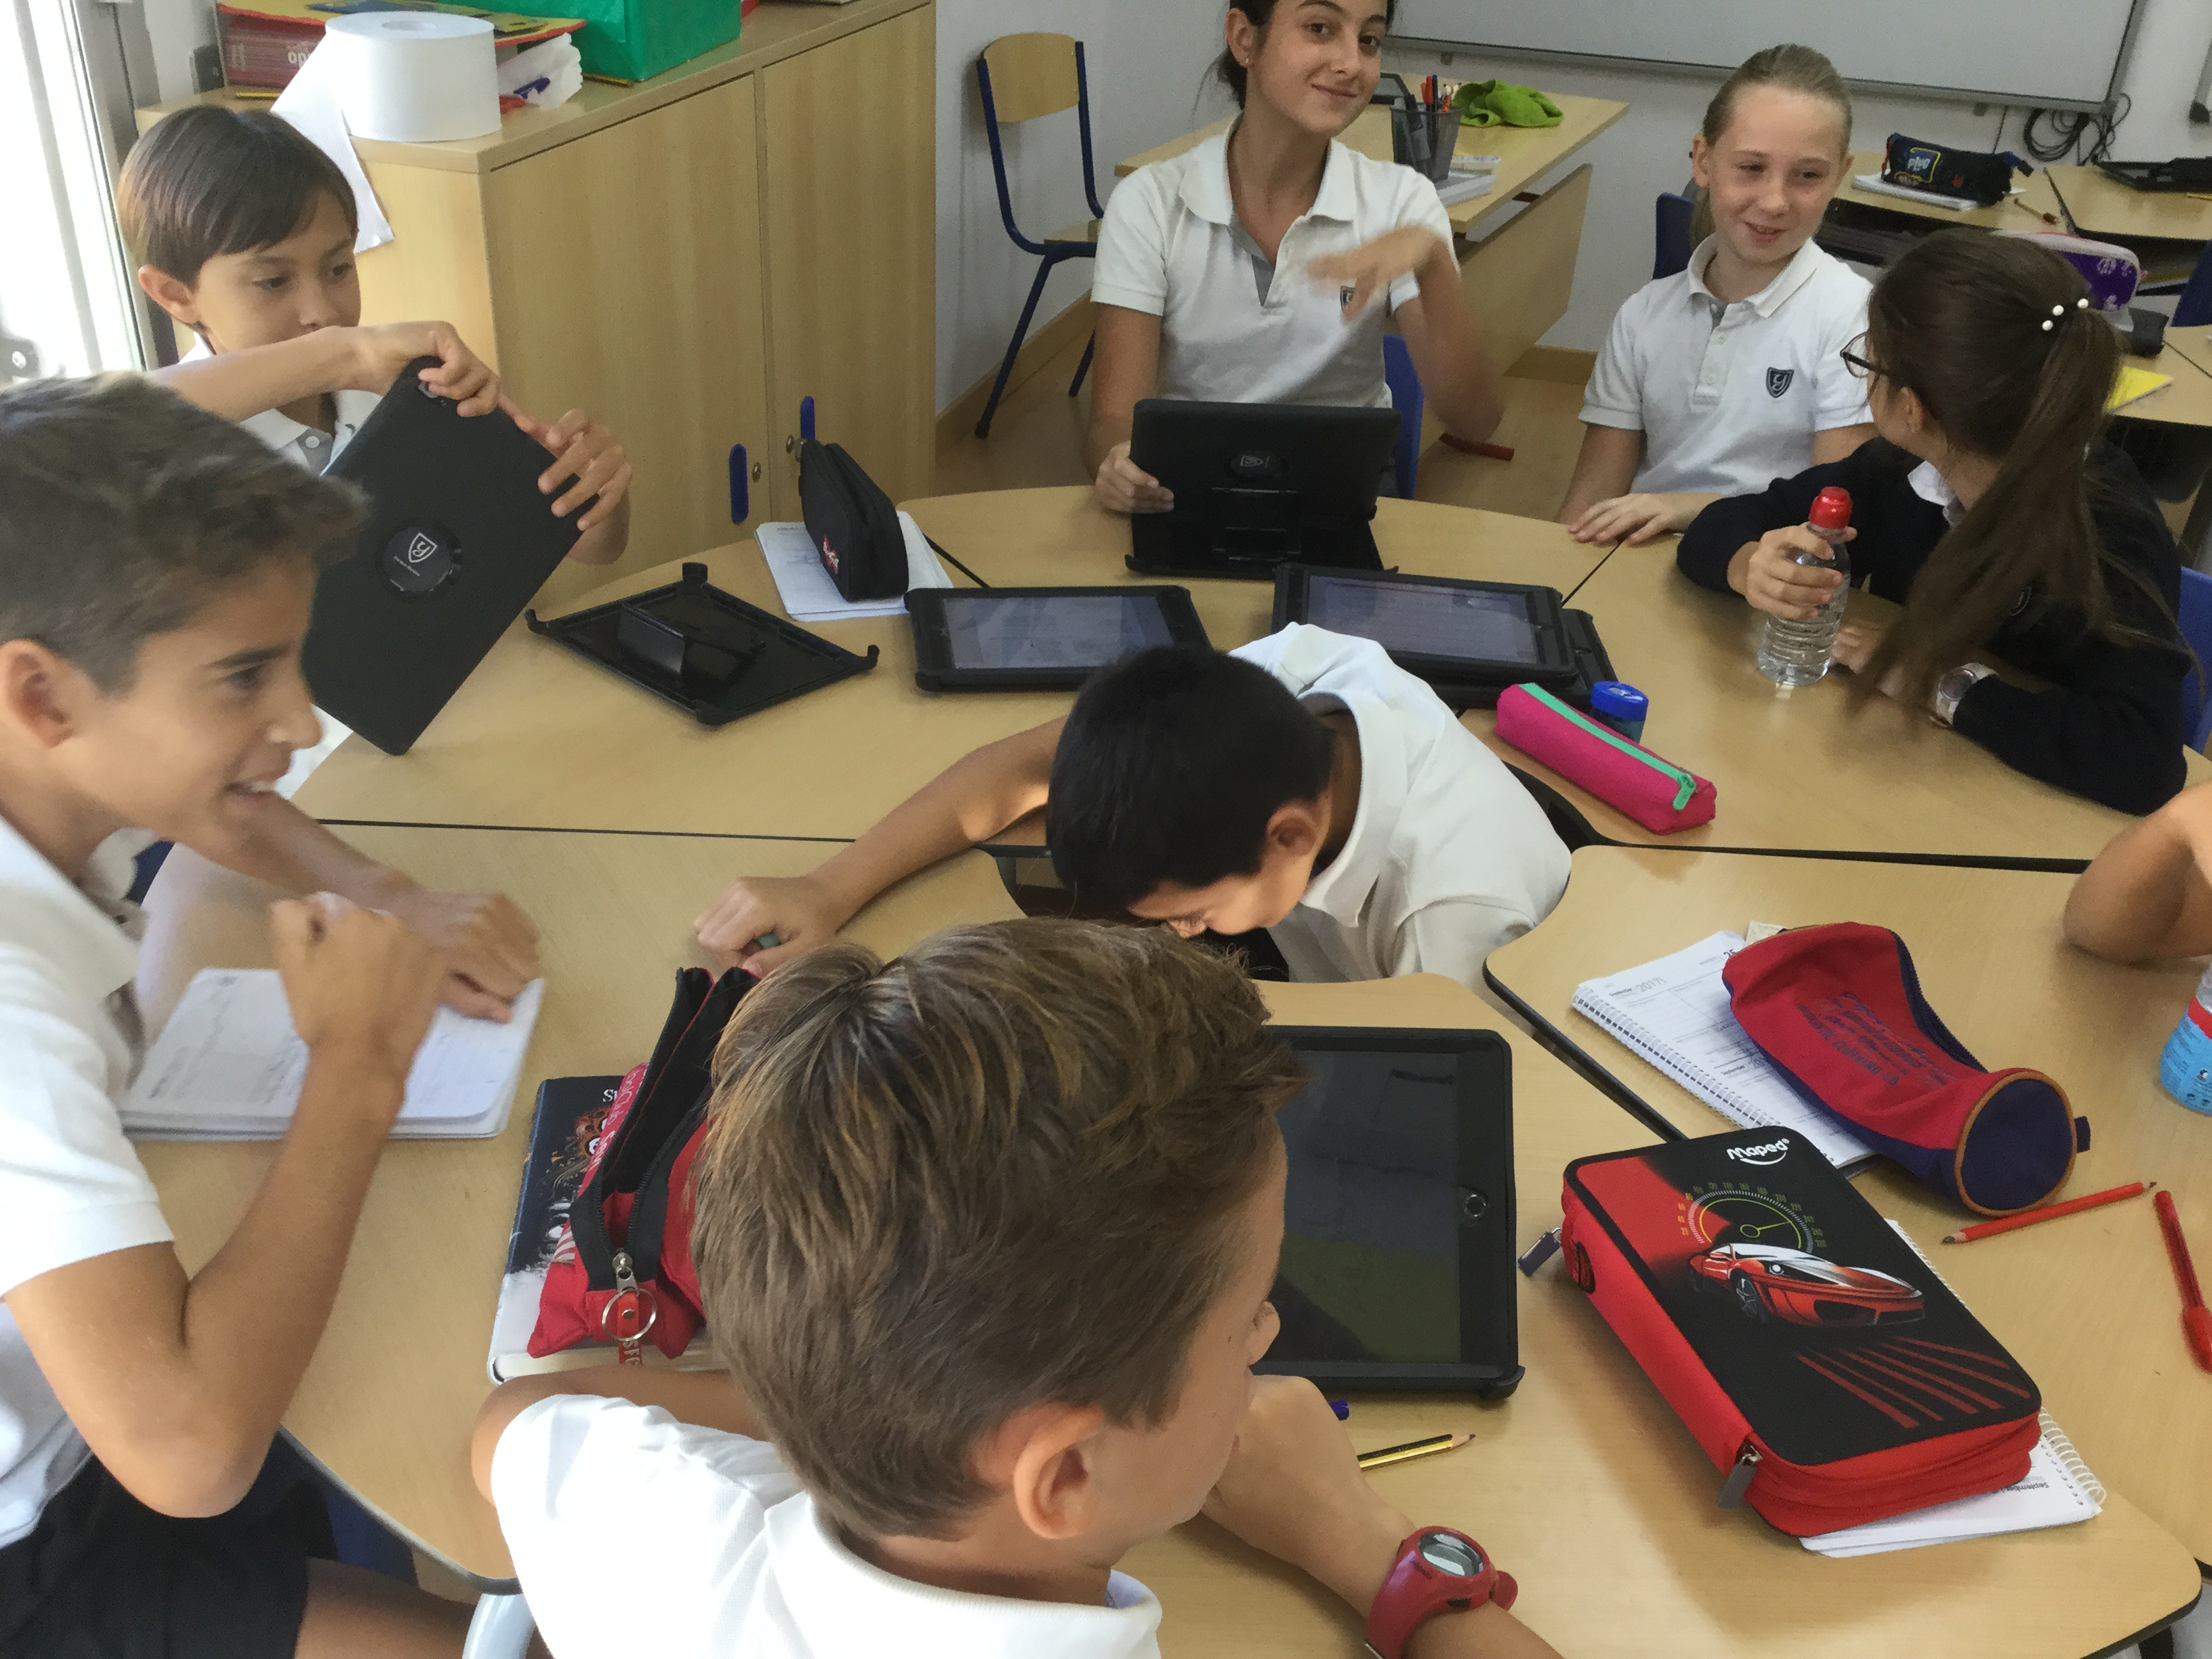 Self organised learning environment sessions in Natural Science